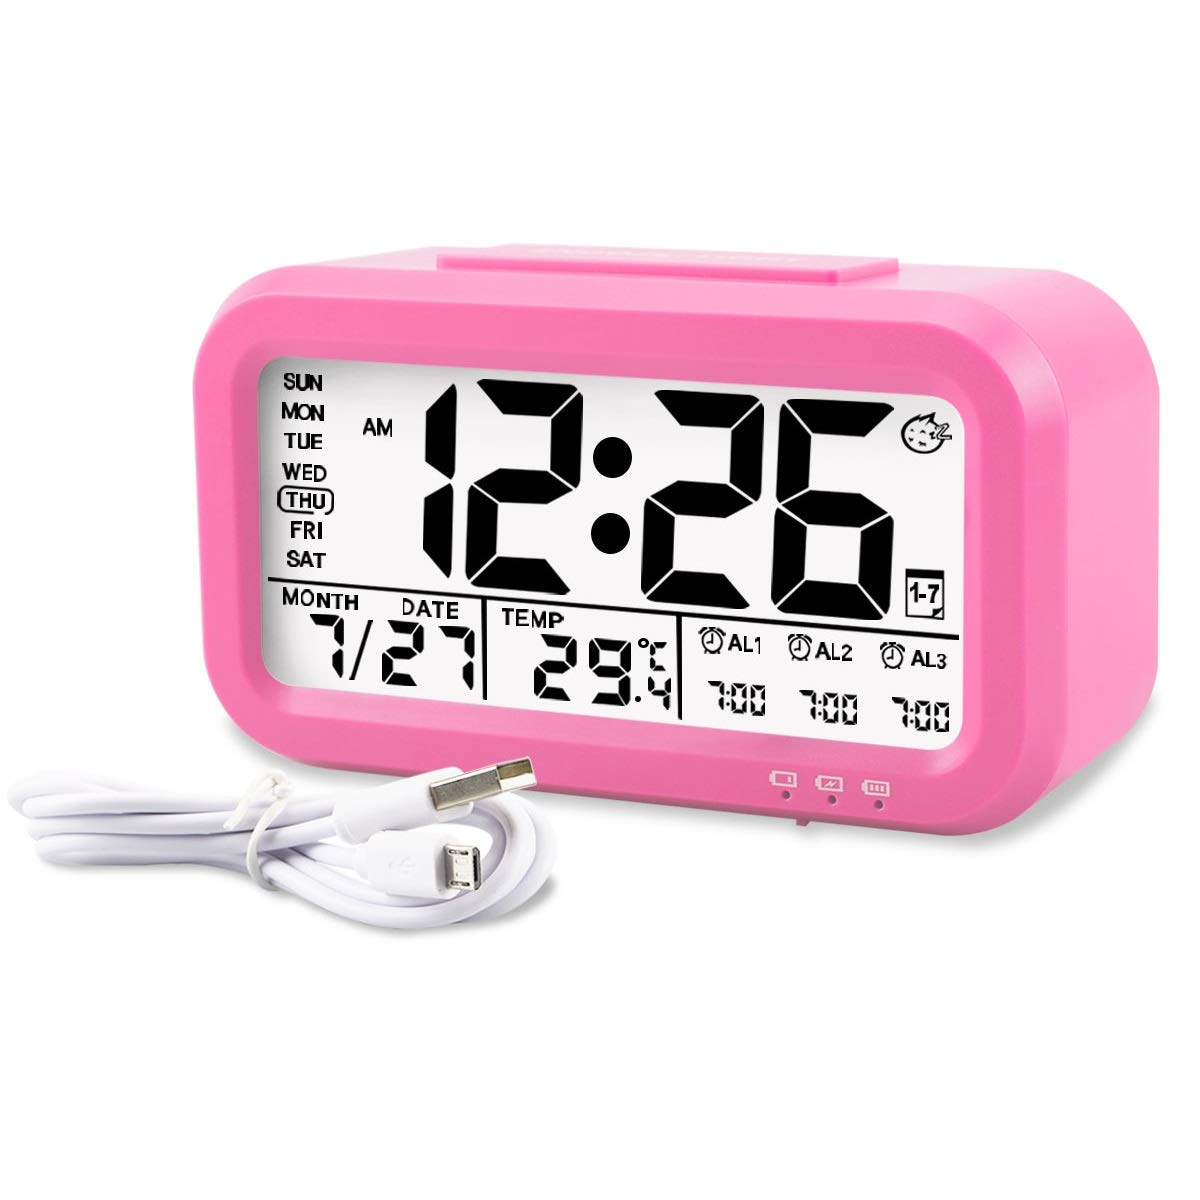 Aitey Alarm Clock, Digital Alarm Clock for Kids, Time/Date/Temperature Display, Snooze Function, 3 Alarms, Optional Weekday Mode, USB Charging (Pink)